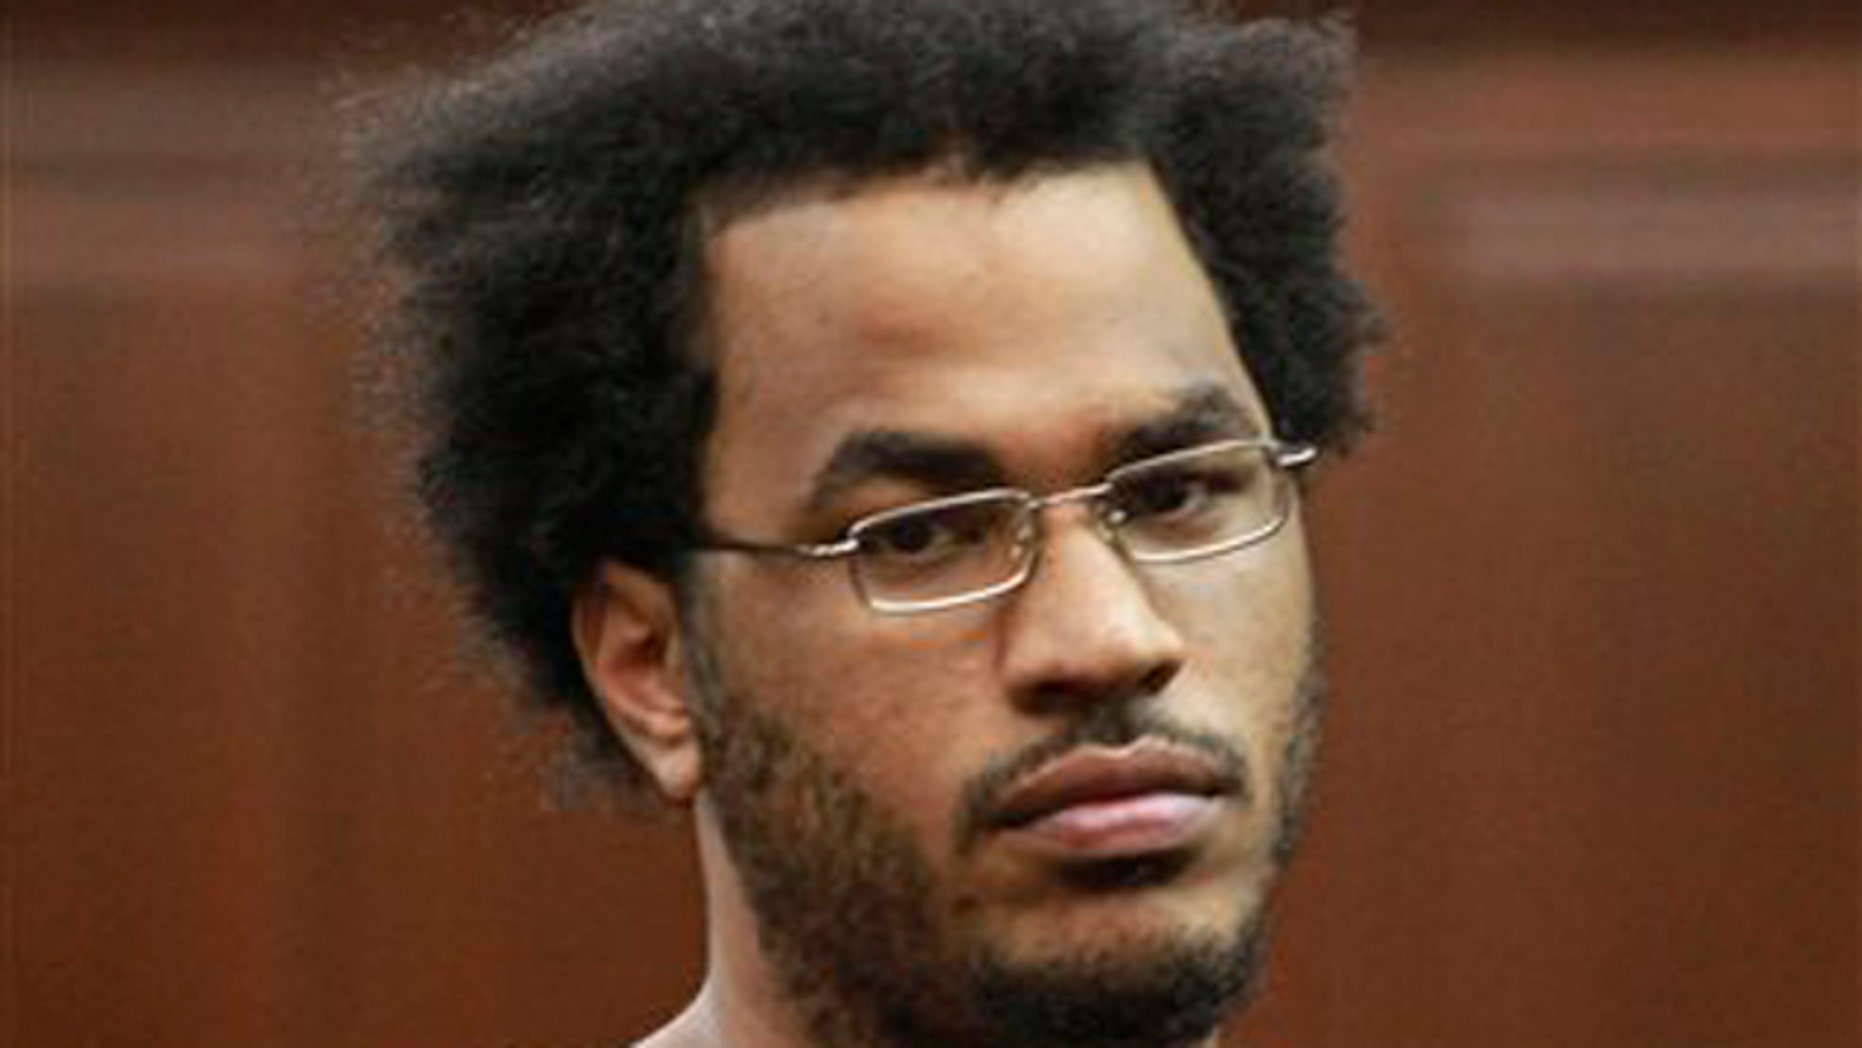 Nov. 20, 2011: In this file photo, Jose Pimentel is shown in Manhattan criminal court in New York.